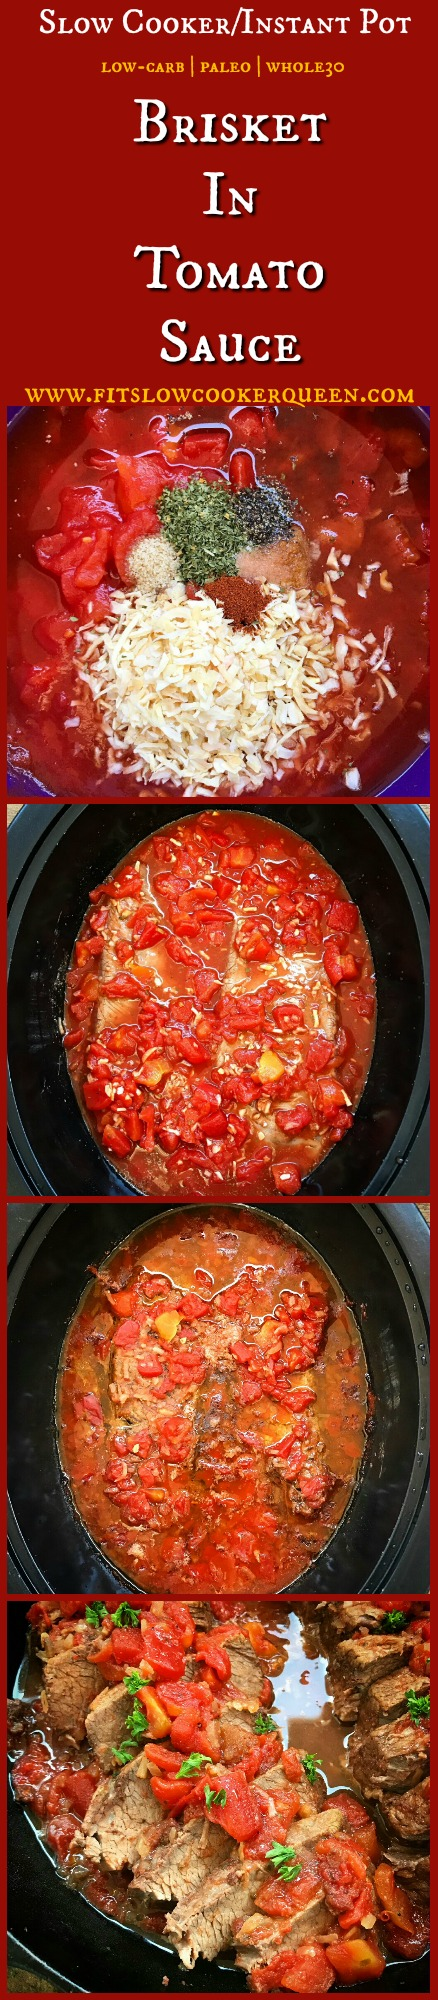 pinterest pin for Slow Cooker_Instant Pot Brisket in Tomato Sauce (Low-Carb, Paleo, Whole30) (1)